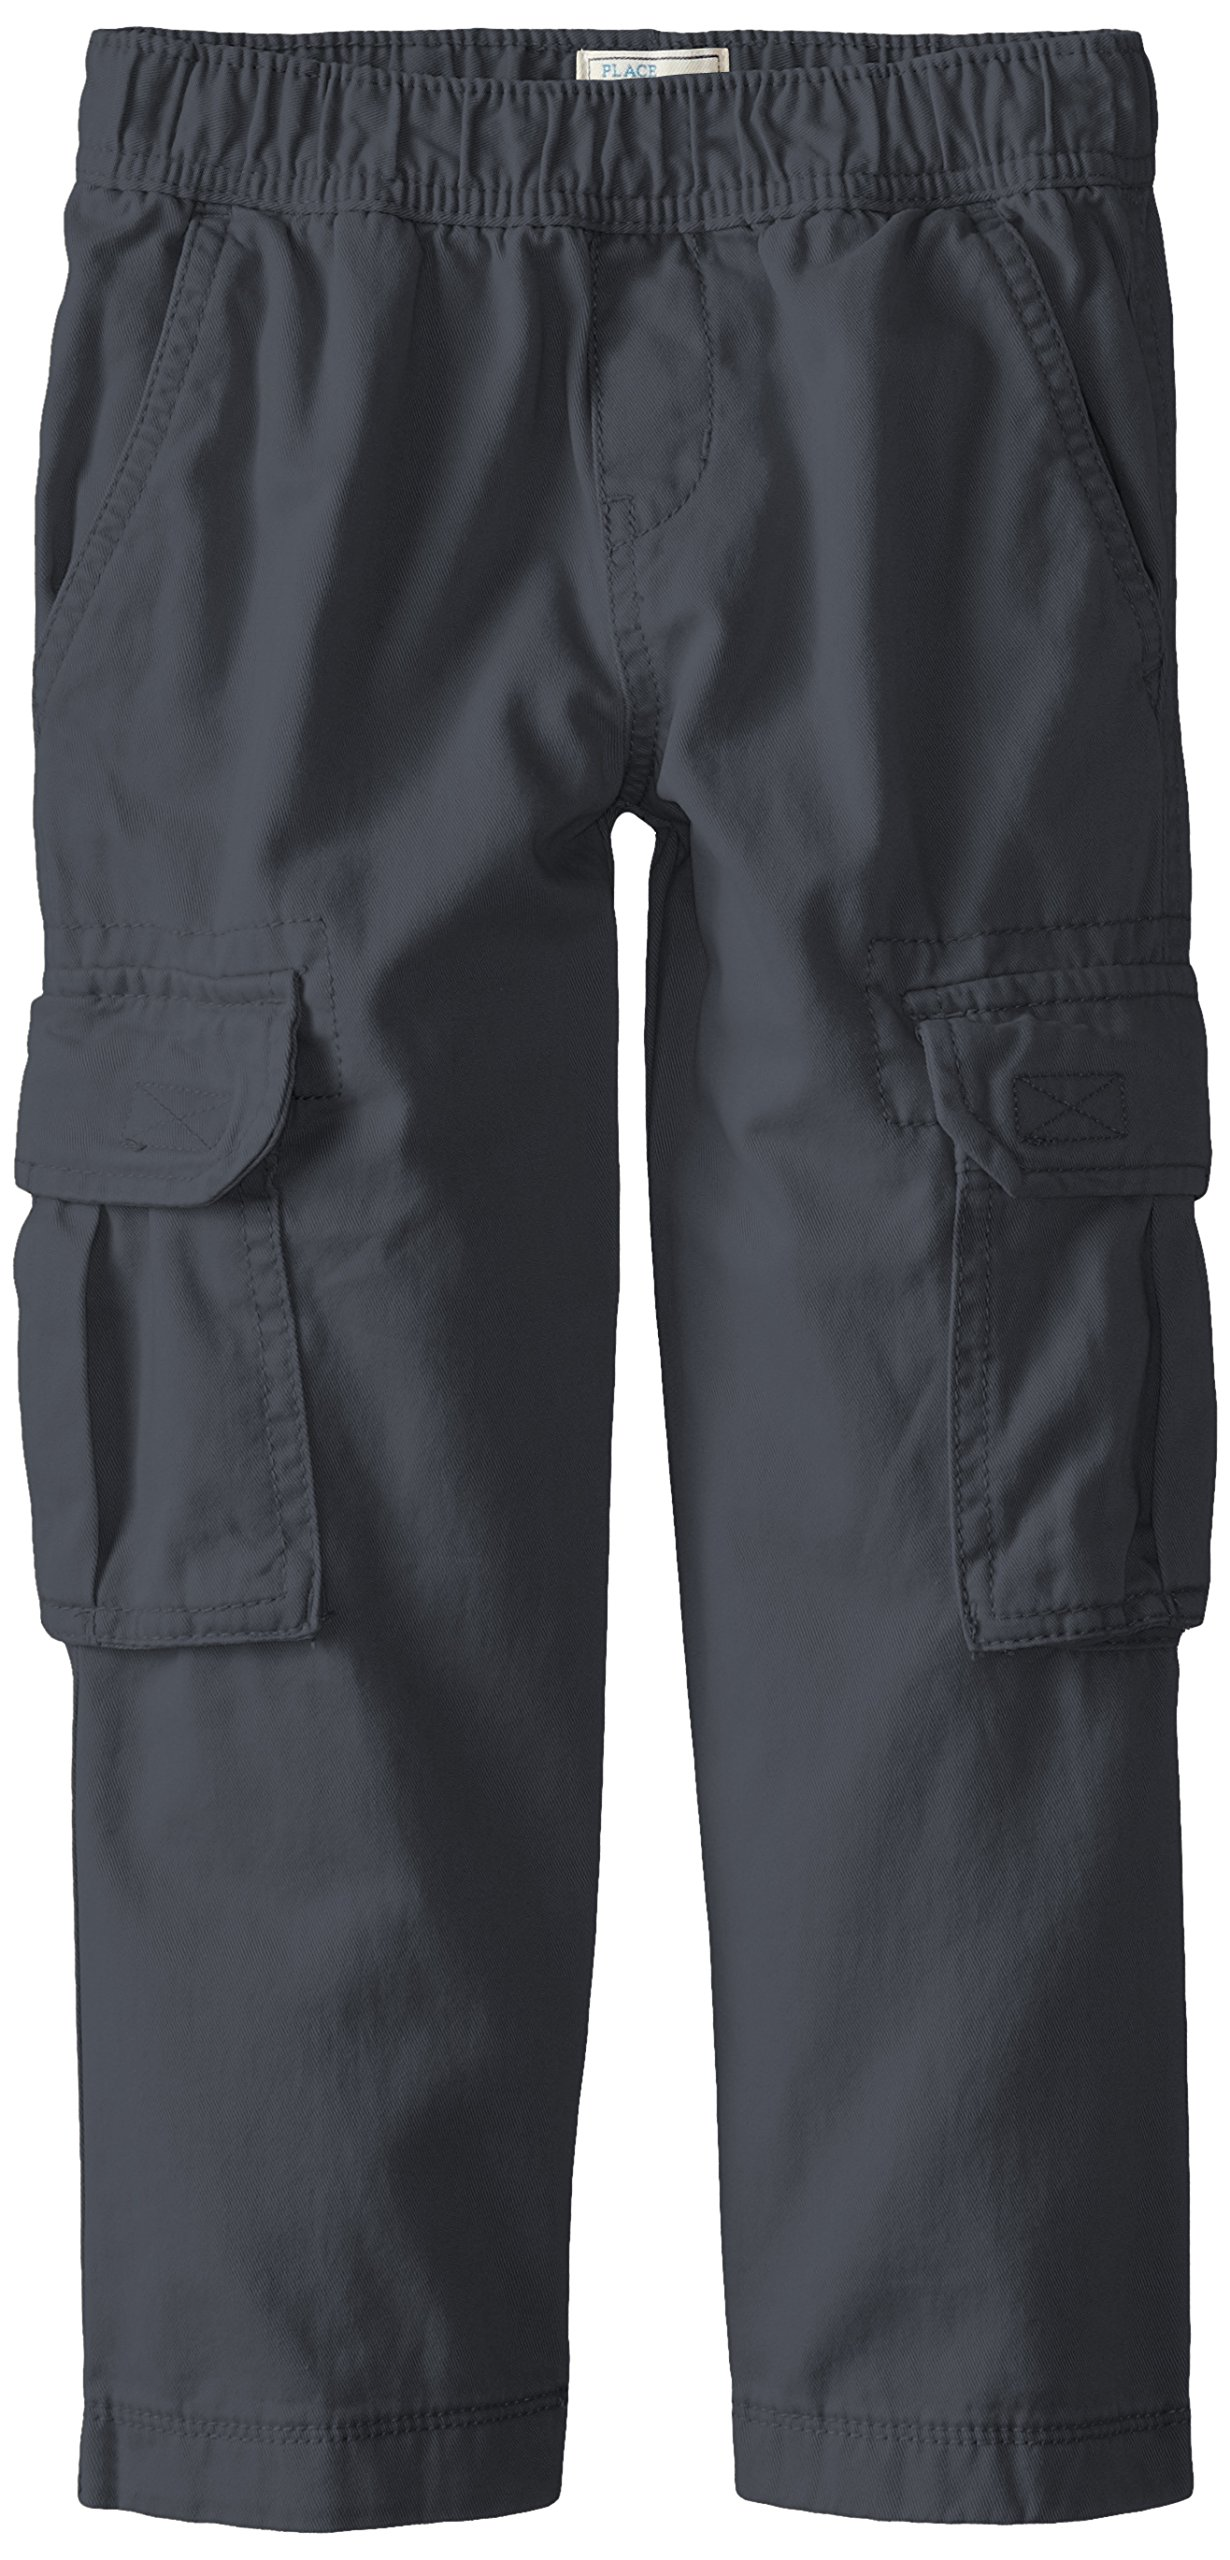 a9f28c2d76 Best Rated in Boys' Pants & Helpful Customer Reviews - Amazon.com